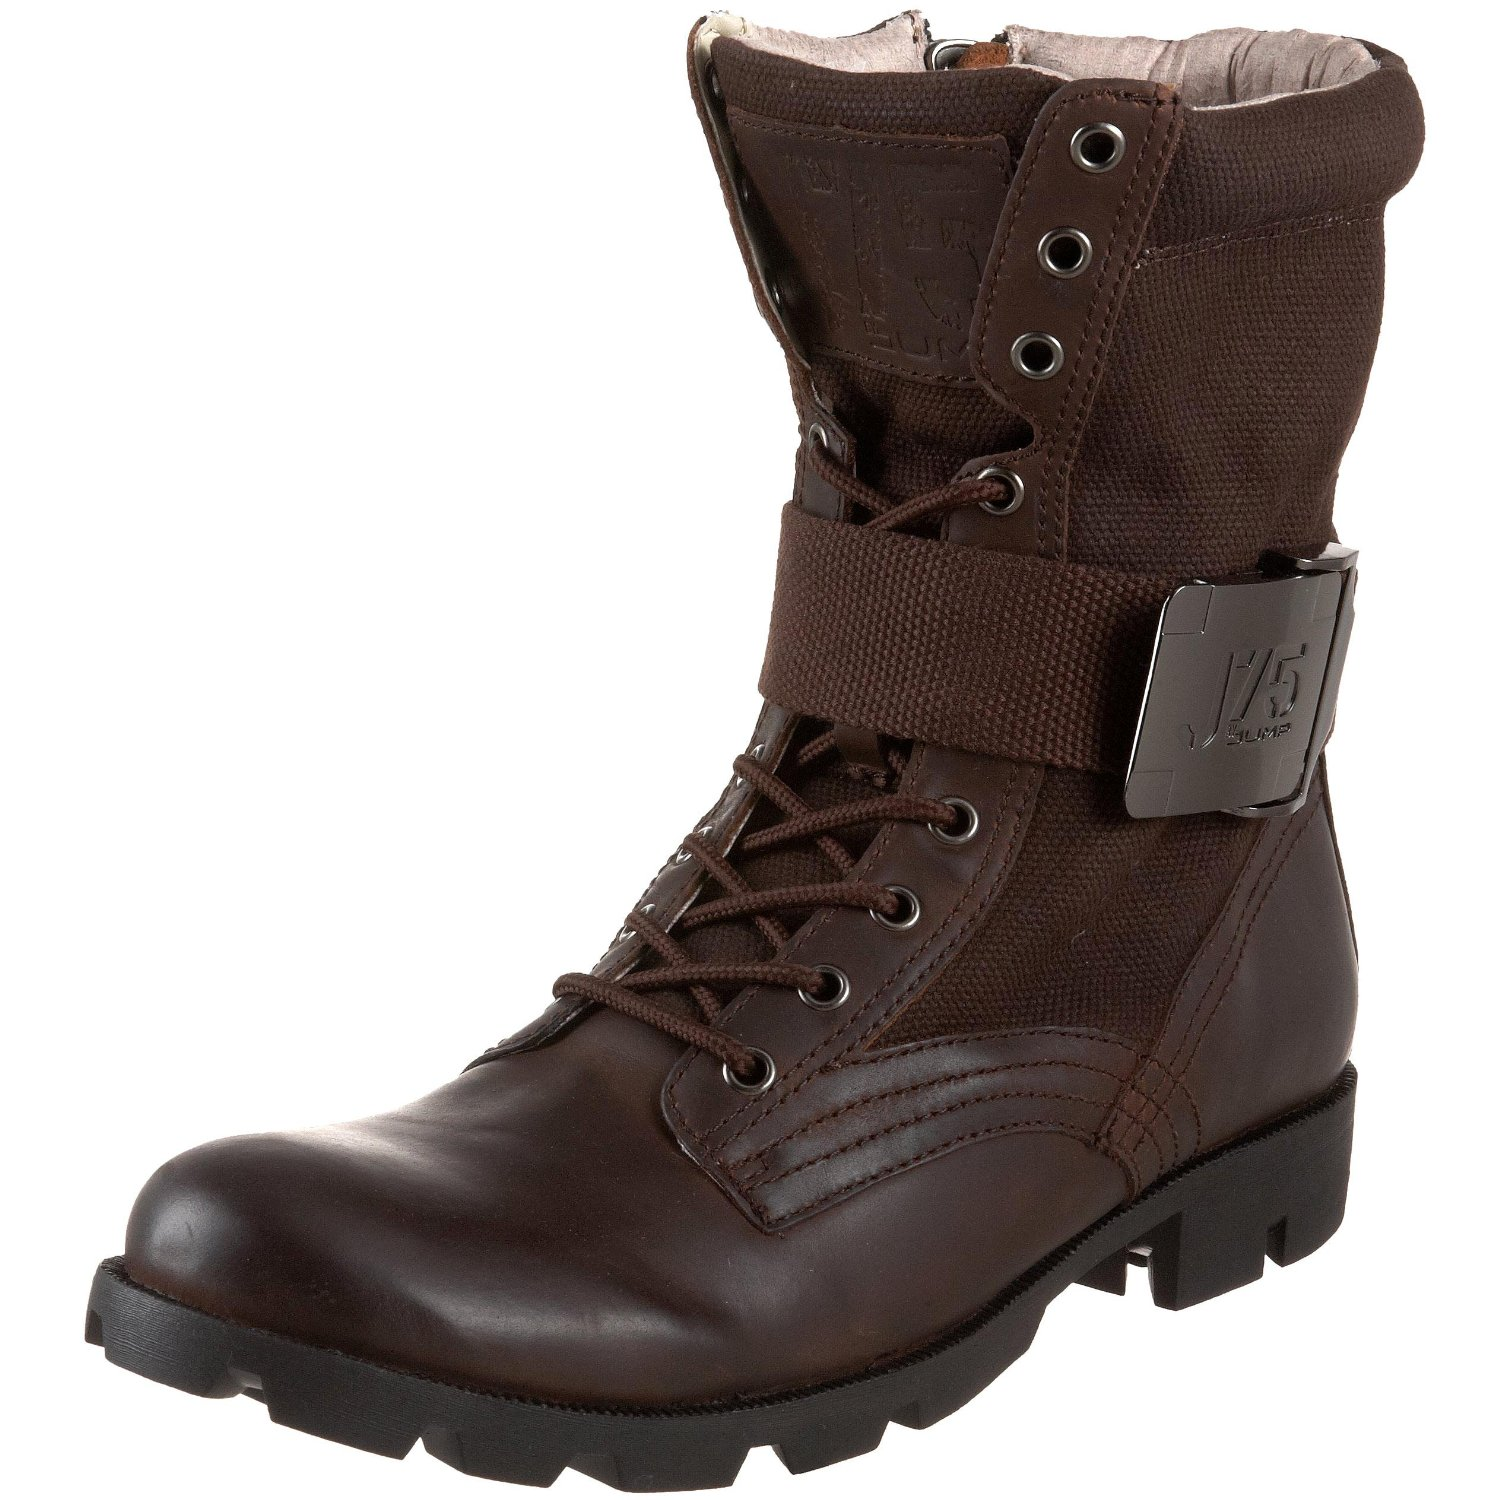 Jump Mens Strong Tall Boot In Brown For Men Lyst